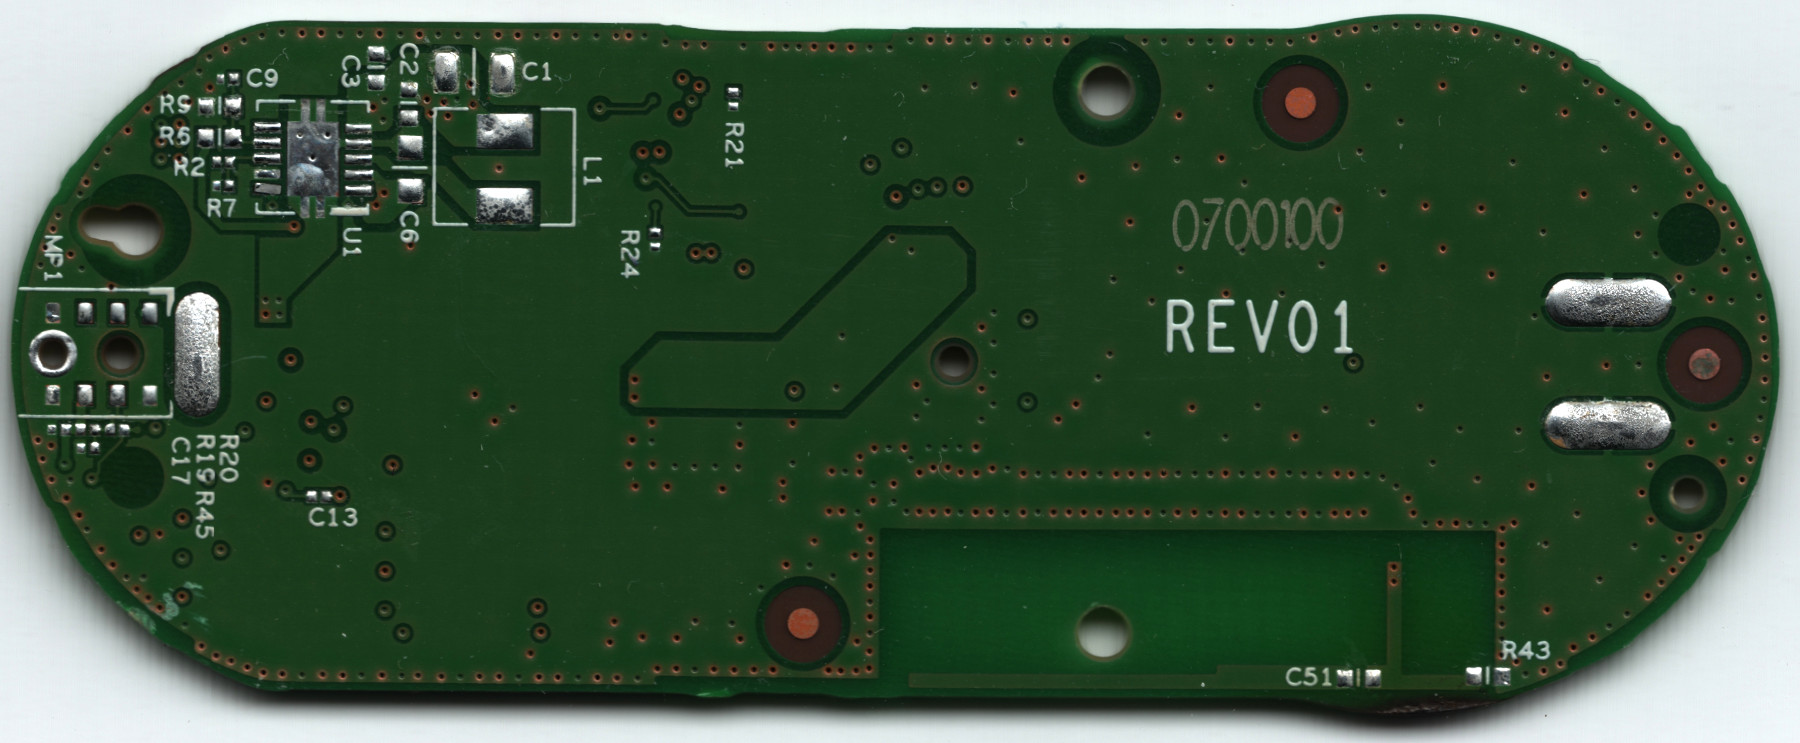 First To Use Removable Printed Circuit Boards Designed For Quick In Amazon Dash Button Teardown Matthew Petroff Back Of Pcb Without Components